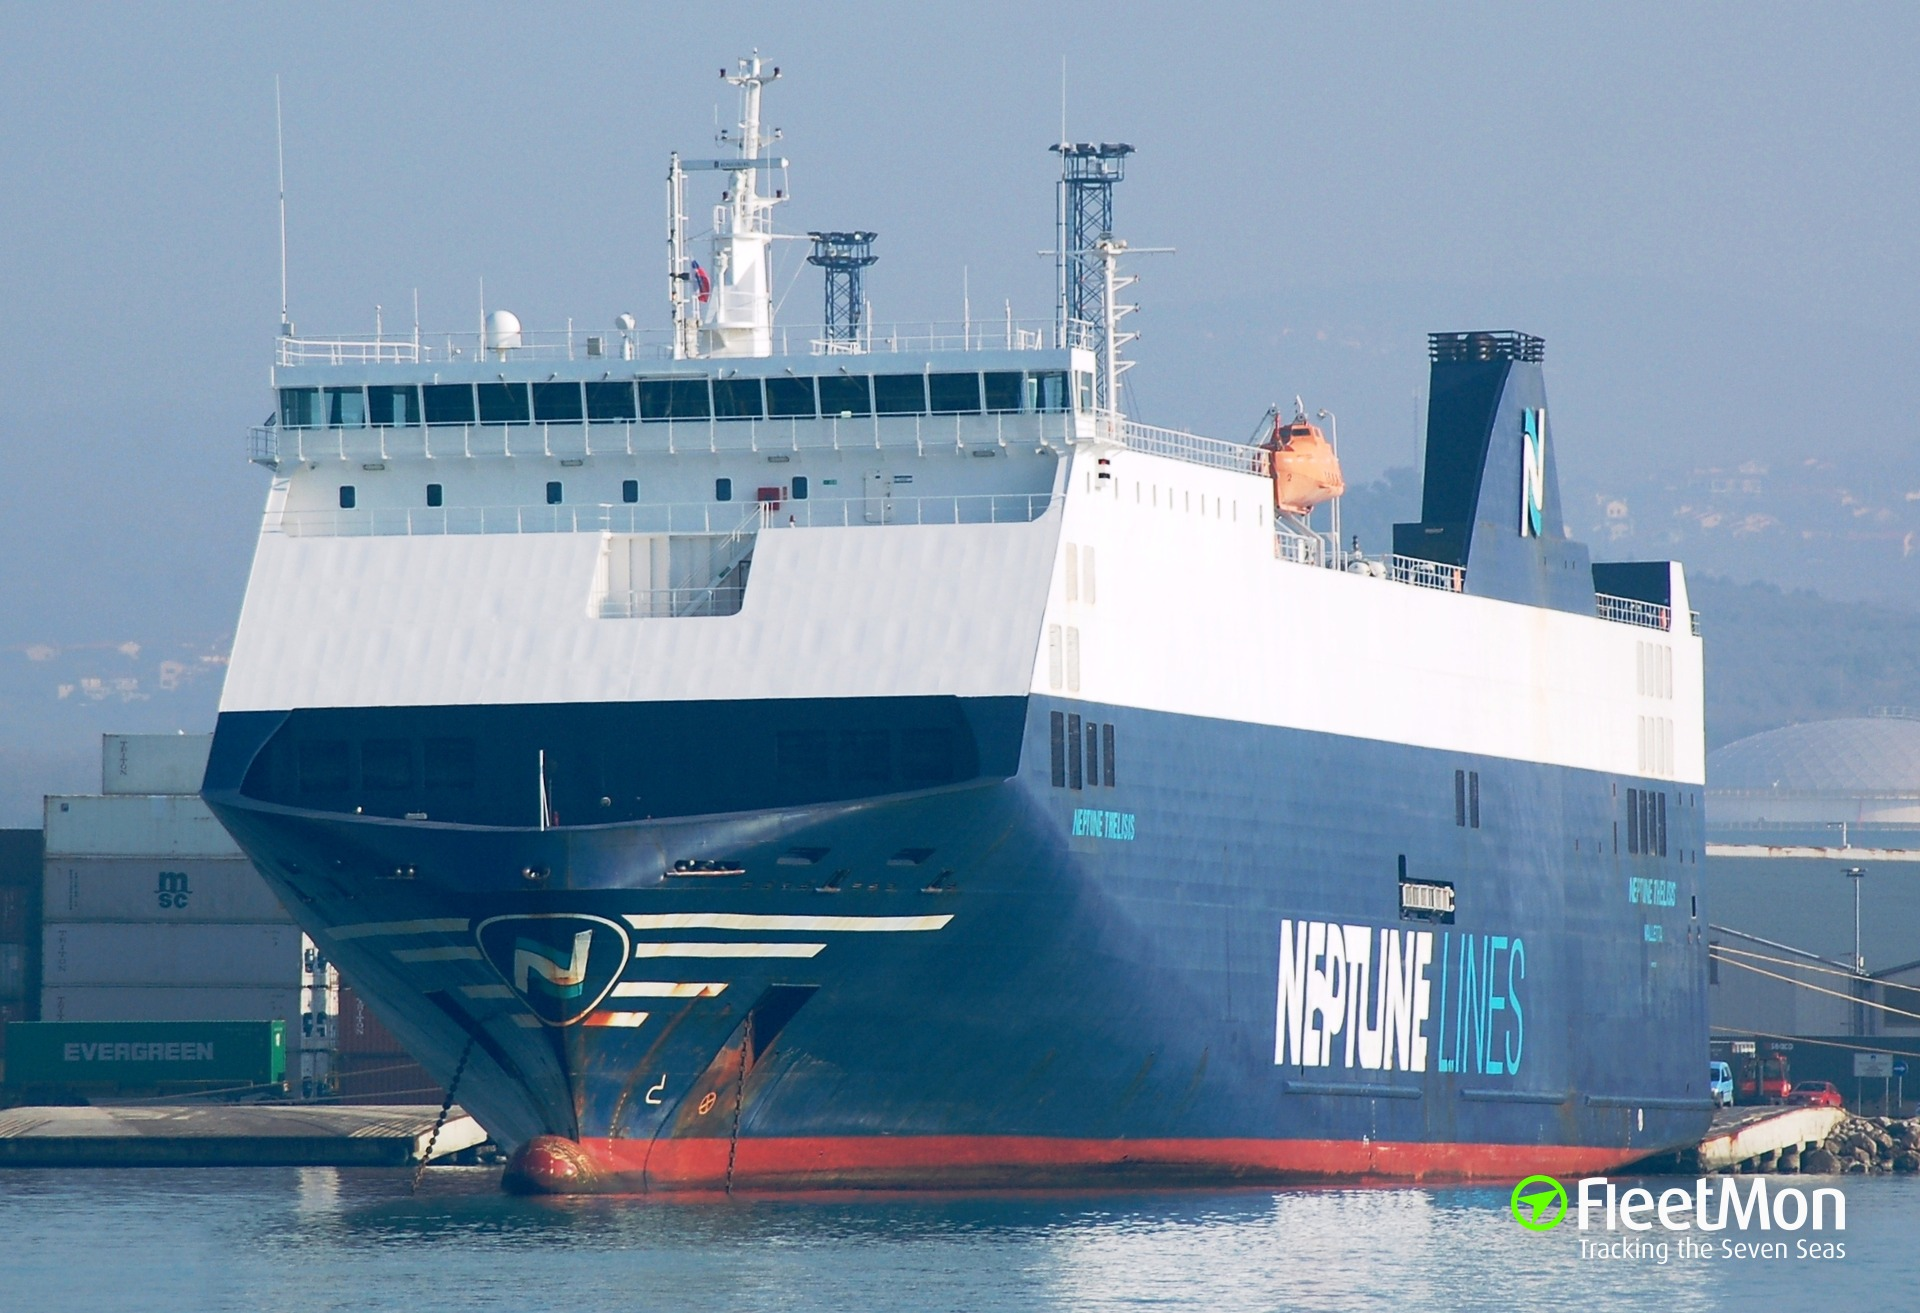 Car carrier NEPTUNE THELISIS mishap at Koper, Slovenia. Who's to blame?